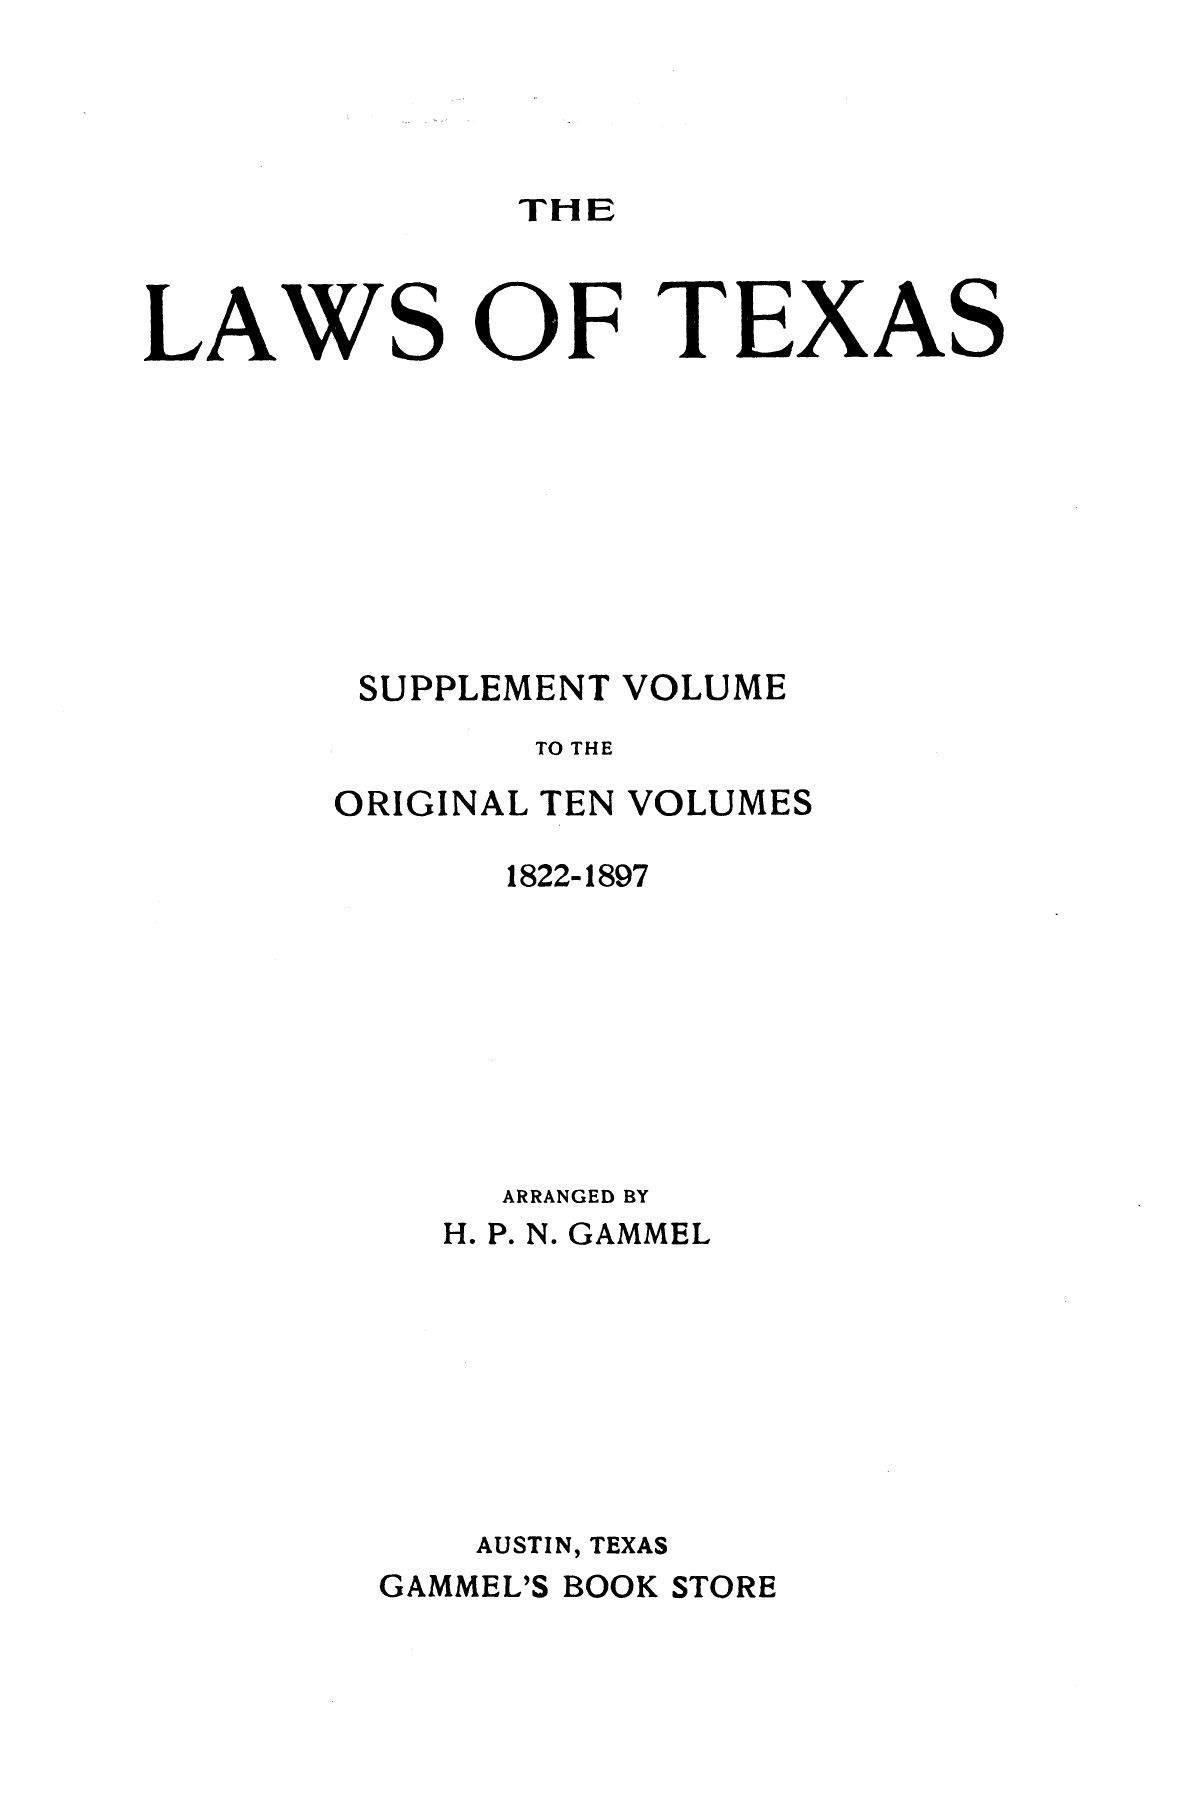 The Laws of Texas, 1897-1902 [Volume 11]                                                                                                      [Sequence #]: 1 of 1380